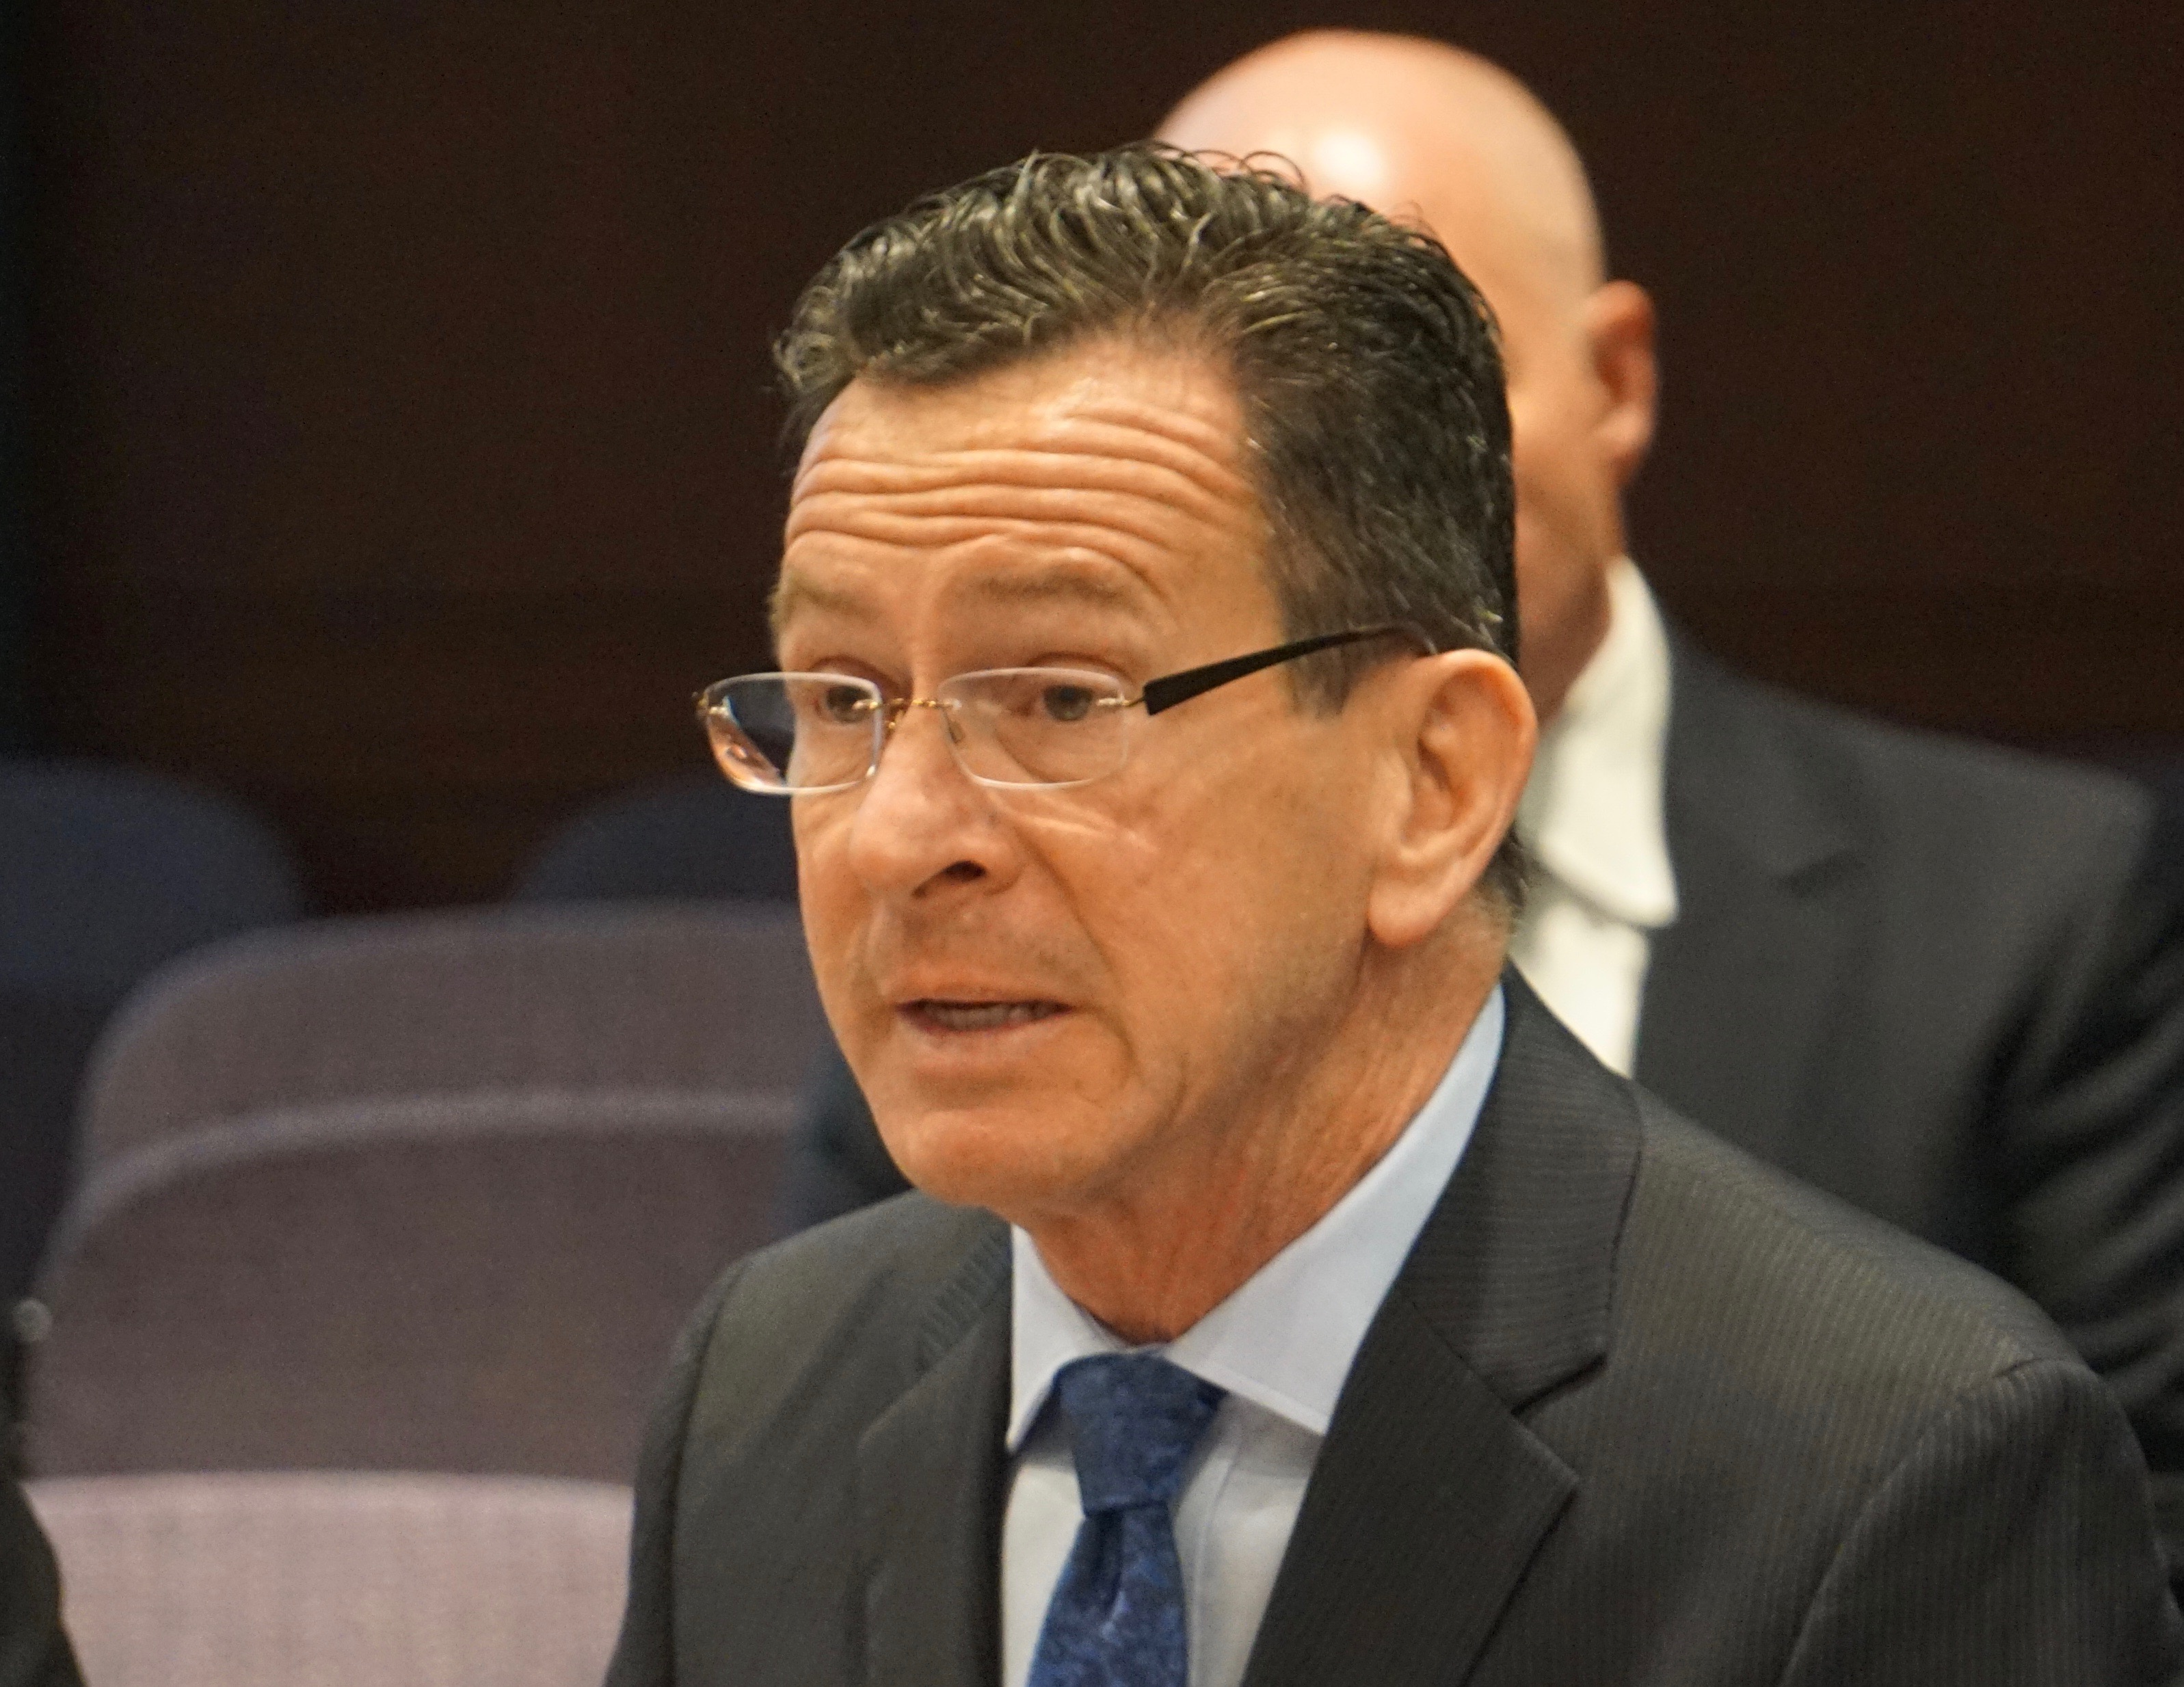 Malloy makes a personal appeal on bail reform